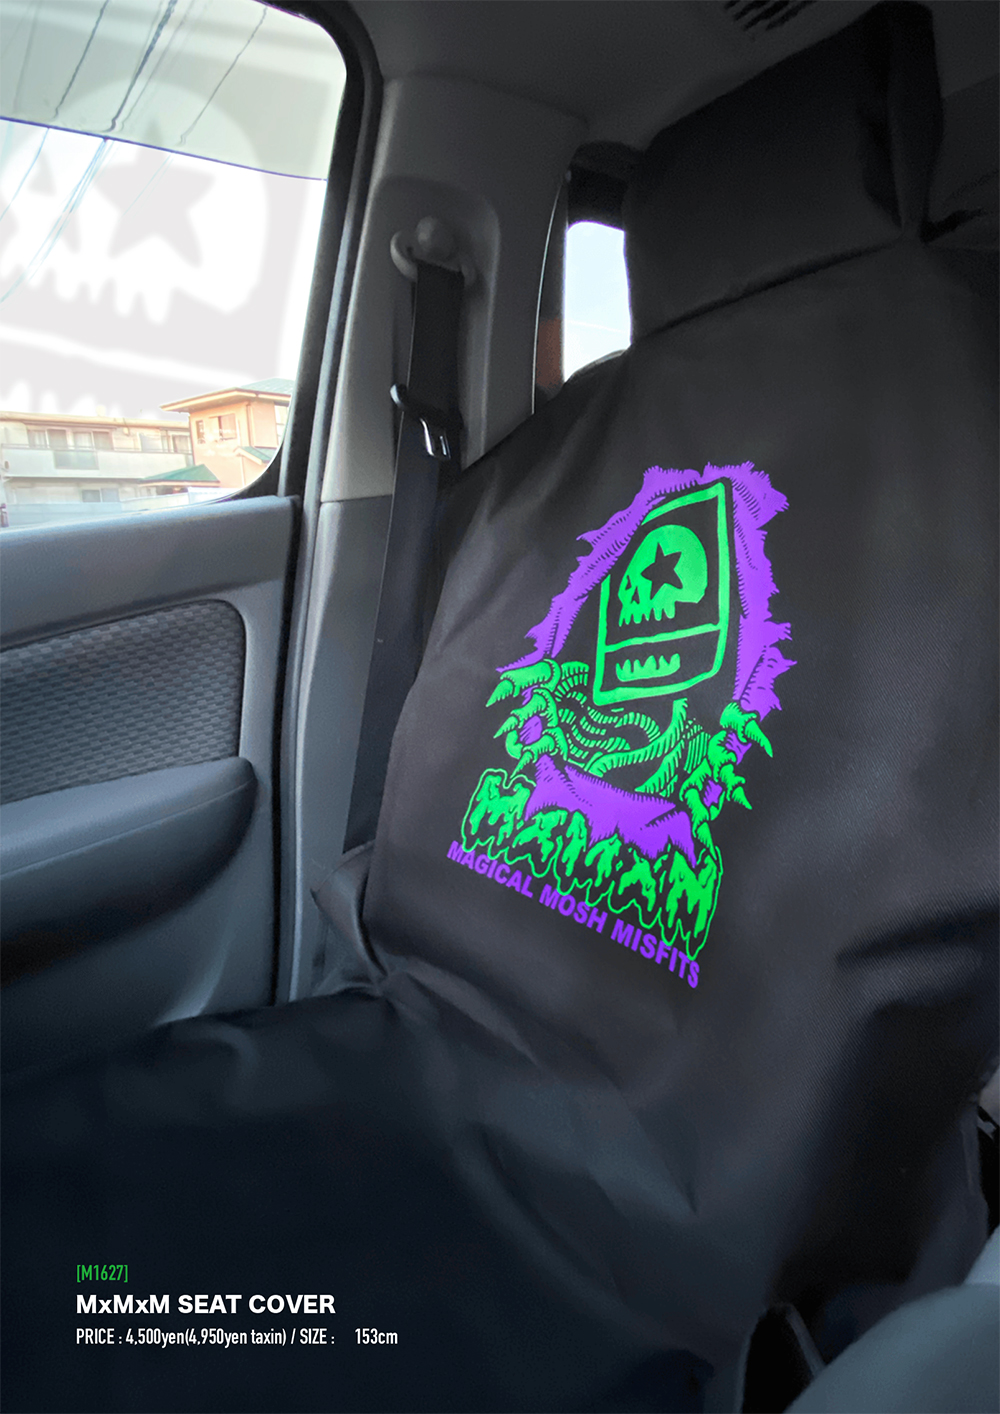 [SOLD OUT] MxMxM SEAT COVER